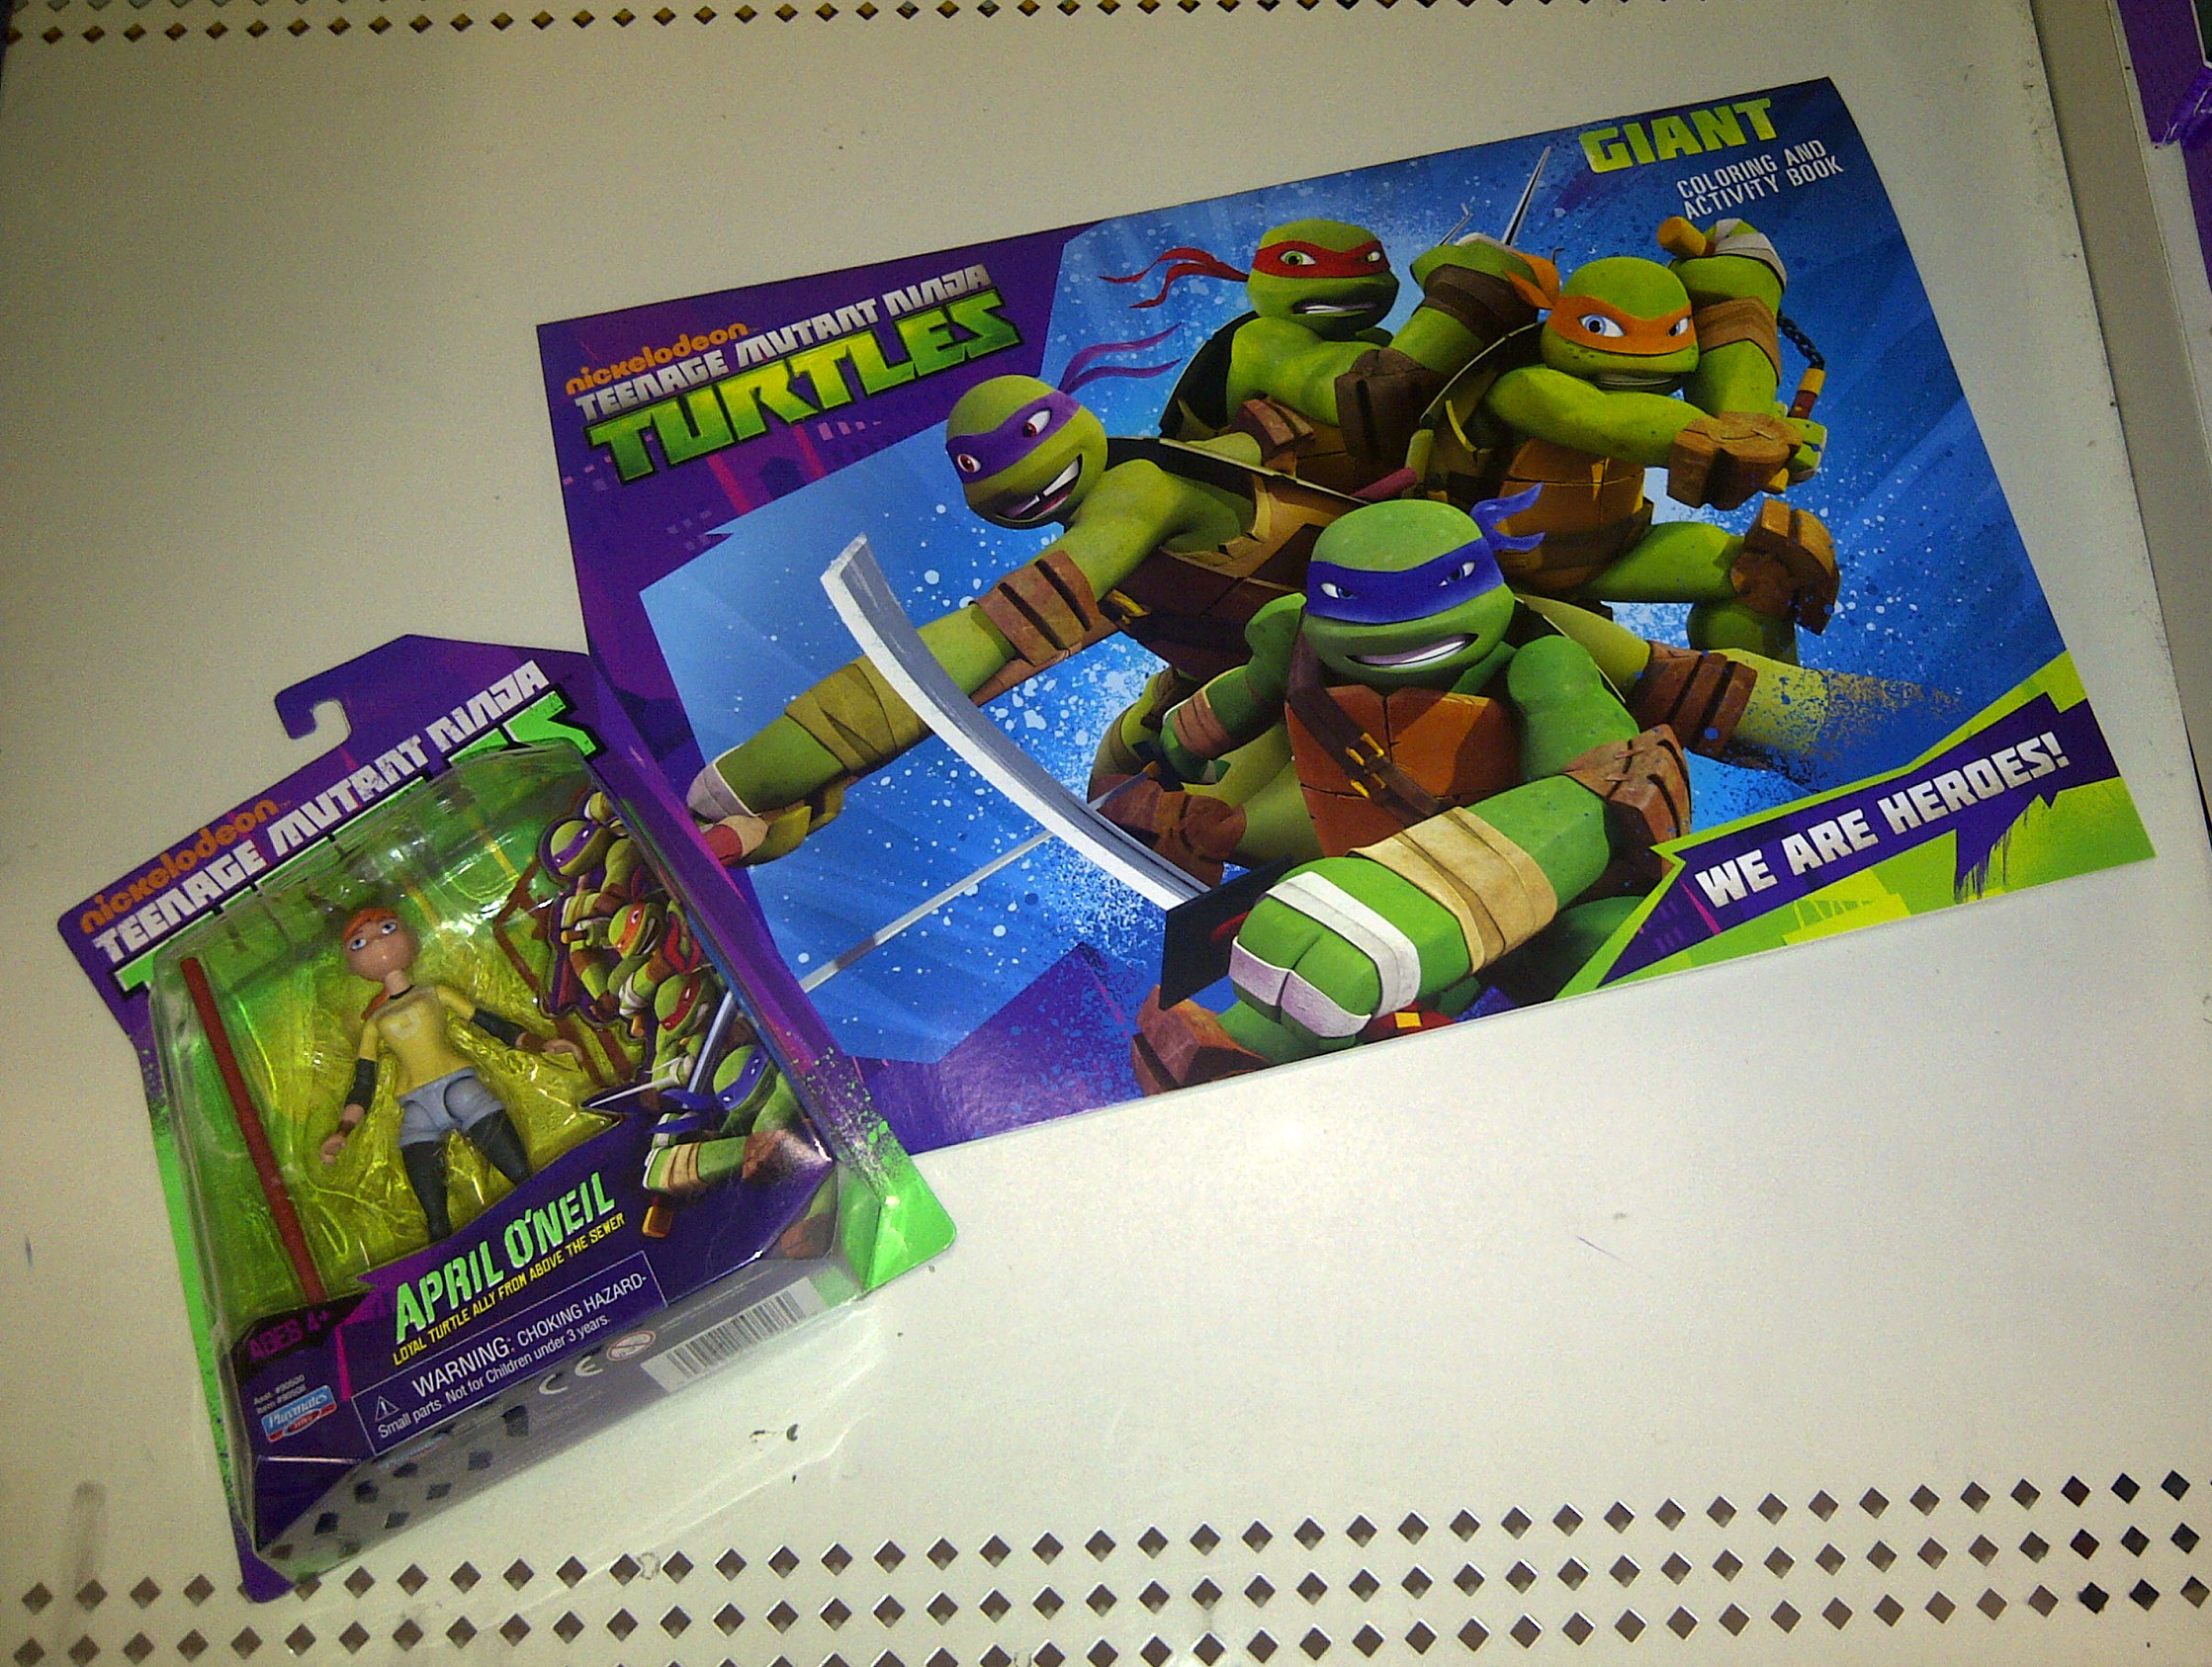 teenage mutant ninja turtles giant coloring book only 1 - Teenage Mutant Ninja Turtles Coloring Book